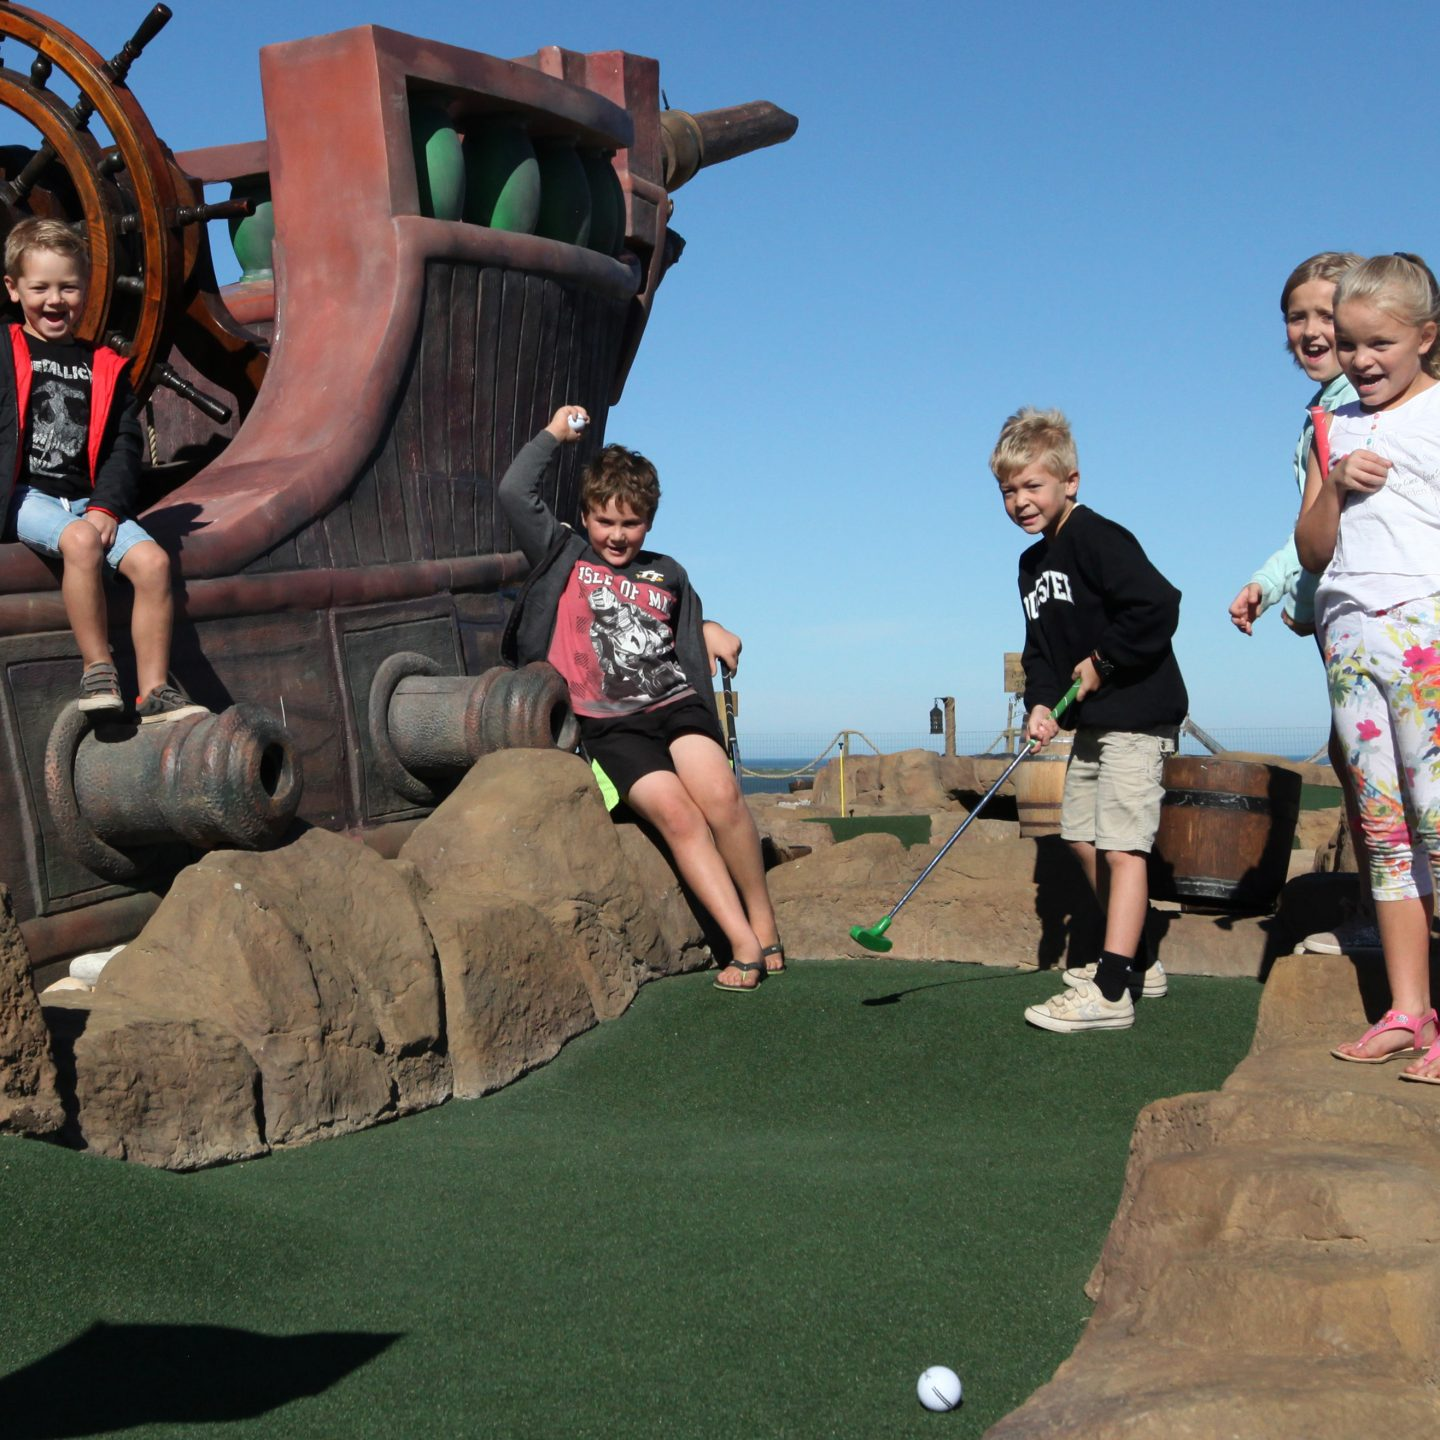 Win a Family Day at Pirate Adventure Golf and Splash Pad @BenguelaCove